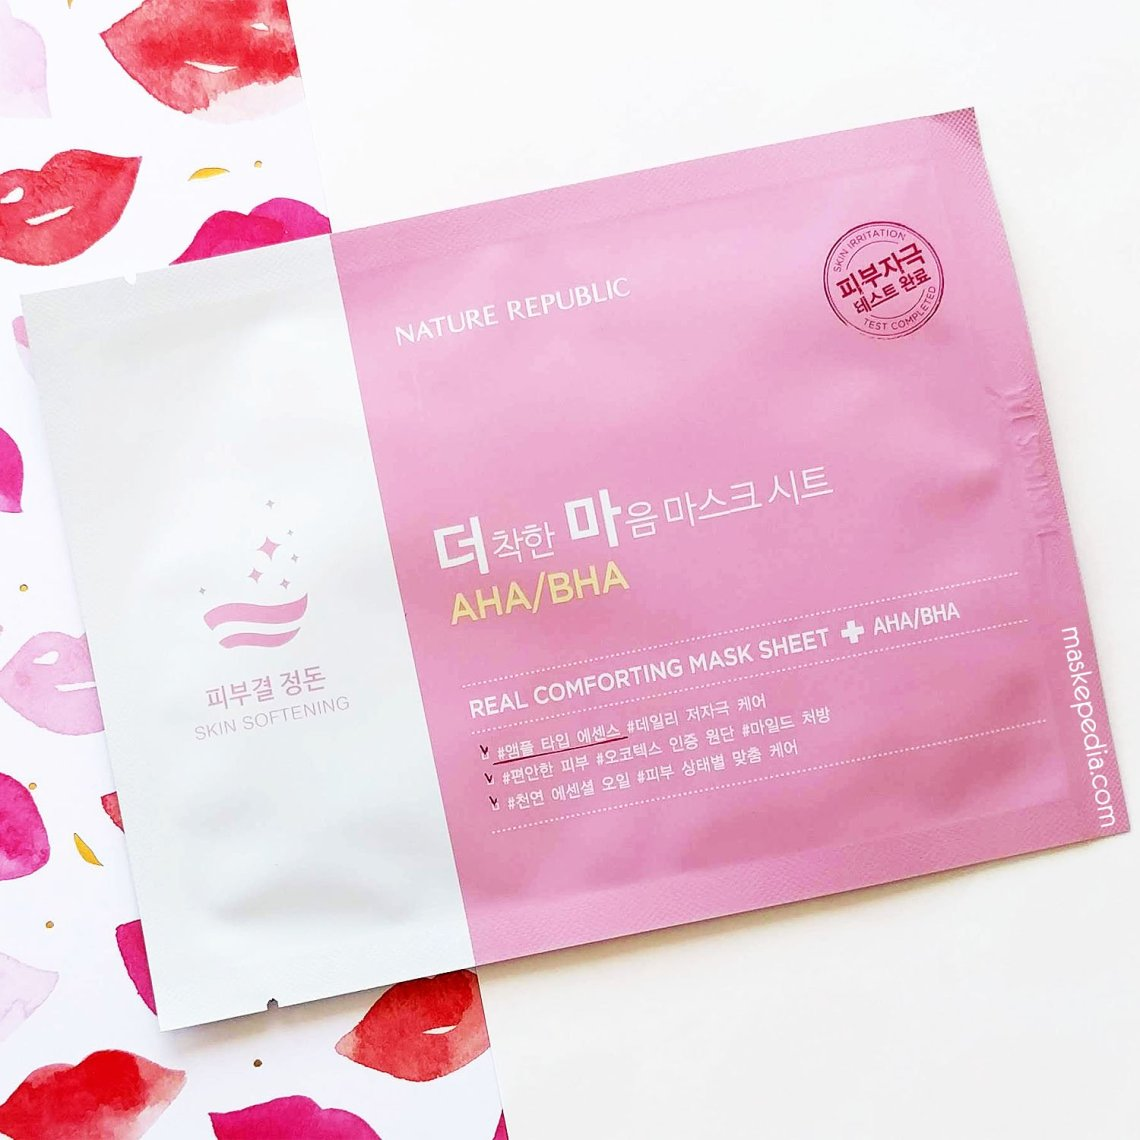 Nature Republic Real Comforting Mask Sheet - AHA/BHA